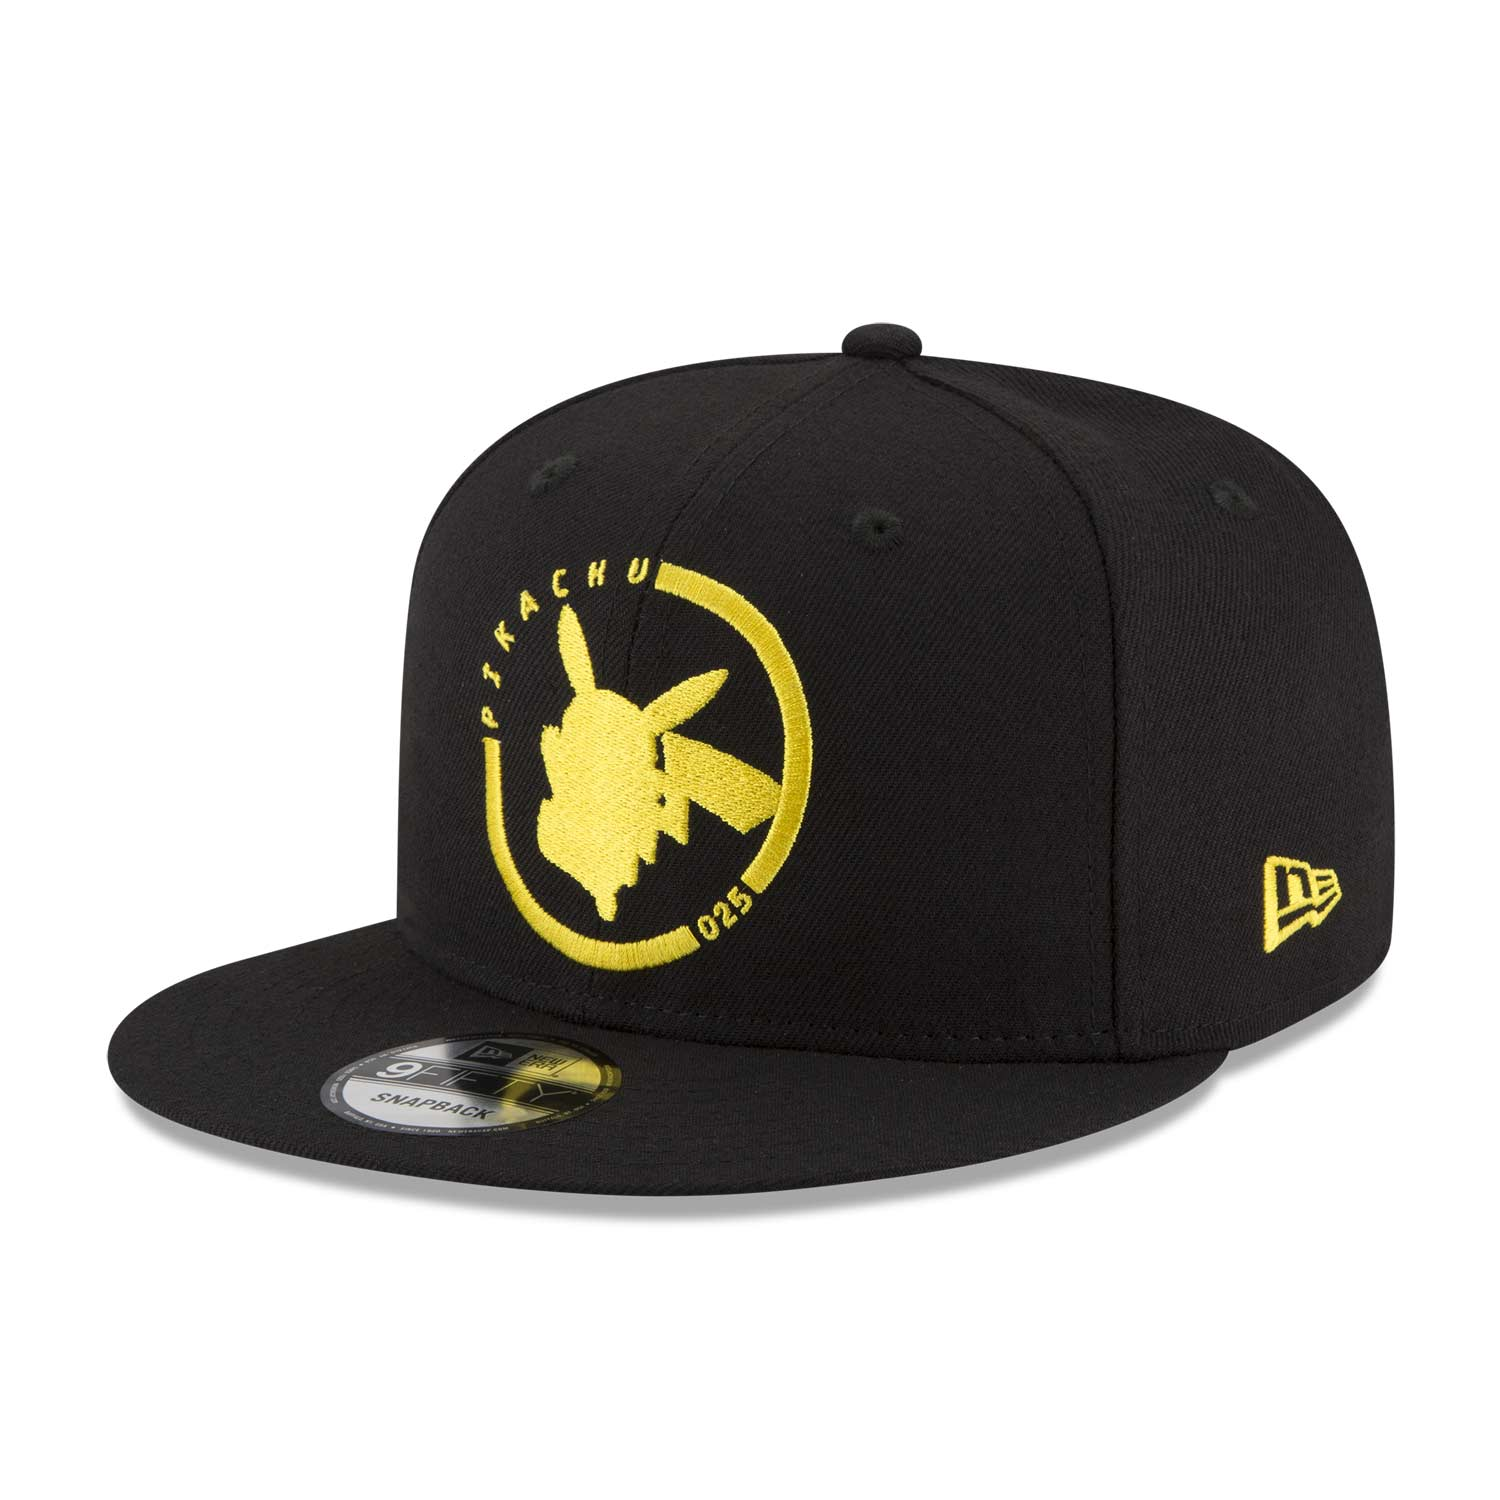 5714f561697901 Image for Pikachu Silhouette Sync 9FIFTY Baseball Cap by New Era (One Size -Adult